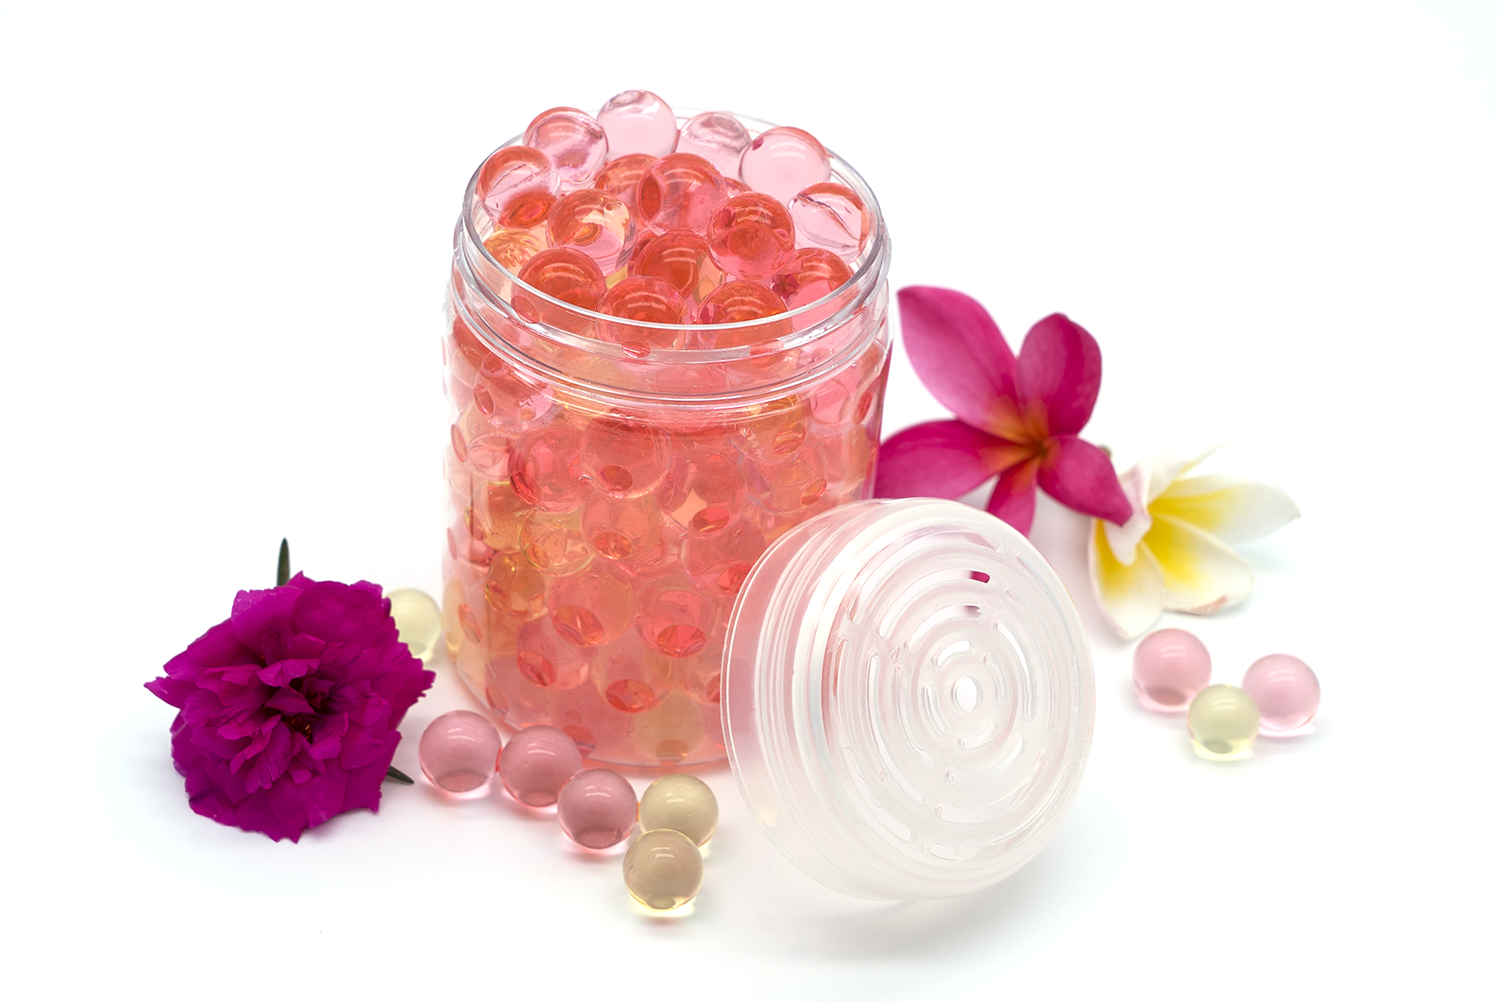 Demi indoor scented gel beads to make office more unique and beautiful for office-1